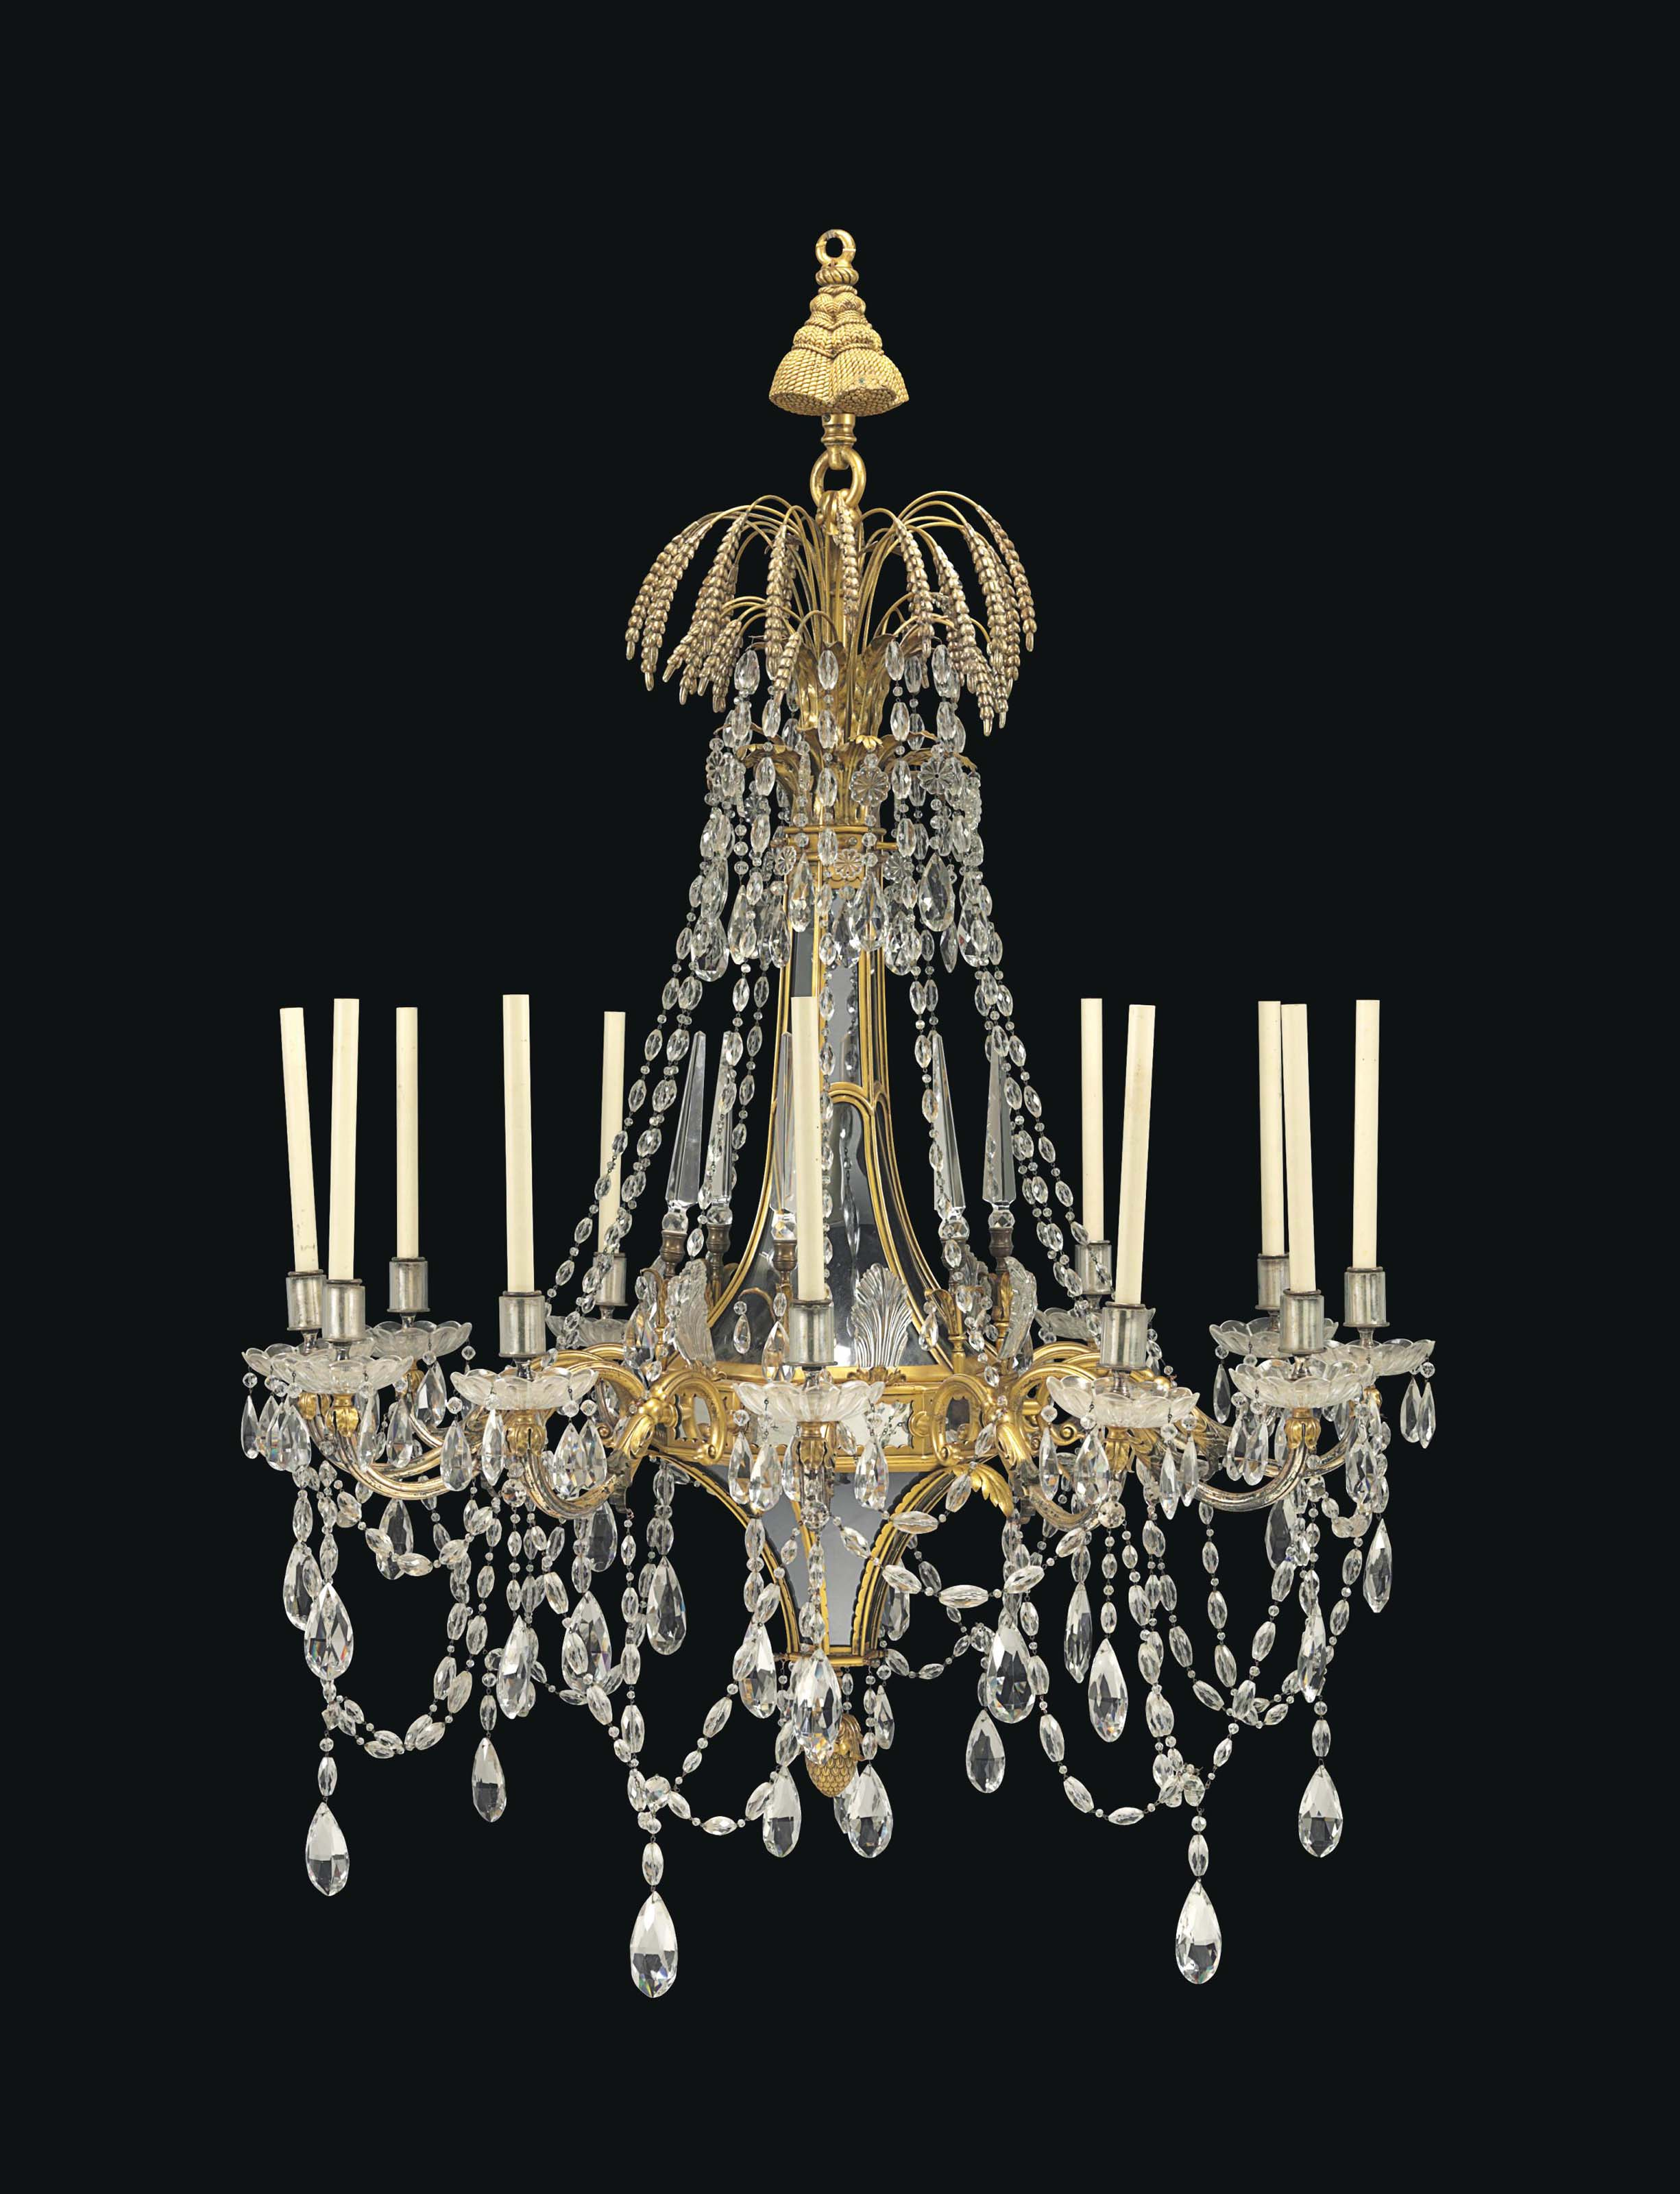 A LARGE AMERICAN GILT-BRONZE, MIRRORED AND CUT-GLASS TWELVE-LIGHT CHANDELIER